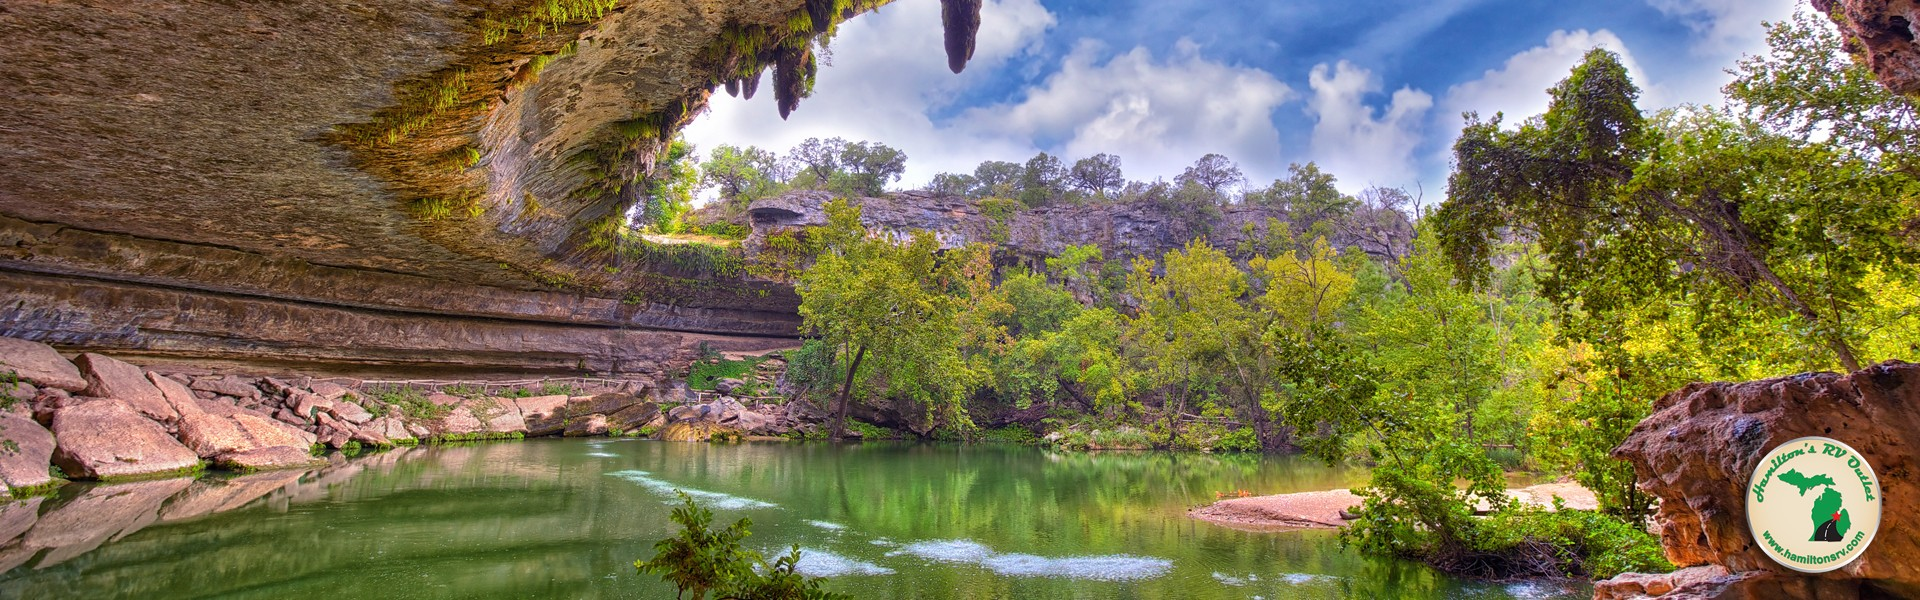 crystal clear waters at Hamilton's Pool in Texas spring view